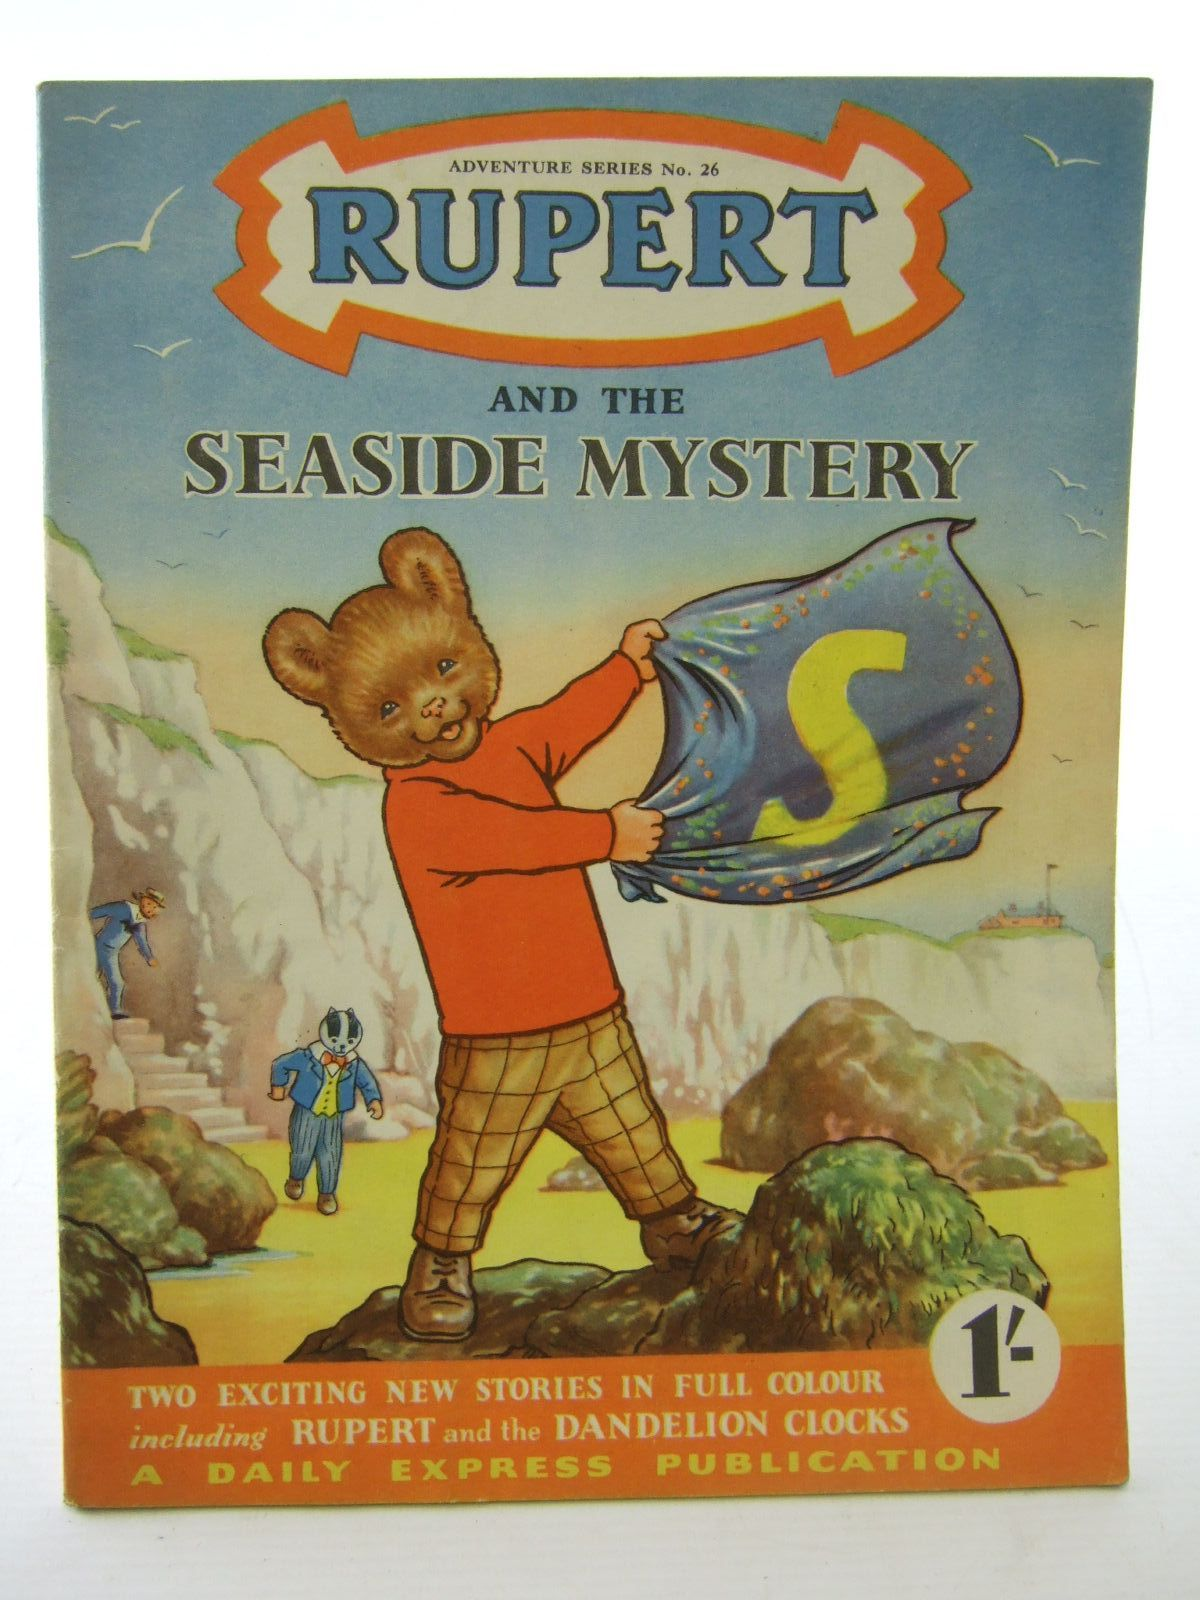 Photo of RUPERT ADVENTURE SERIES No. 26 - RUPERT AND THE SEASIDE MYSTERY written by Bestall, Alfred published by Daily Express (STOCK CODE: 1706115)  for sale by Stella & Rose's Books